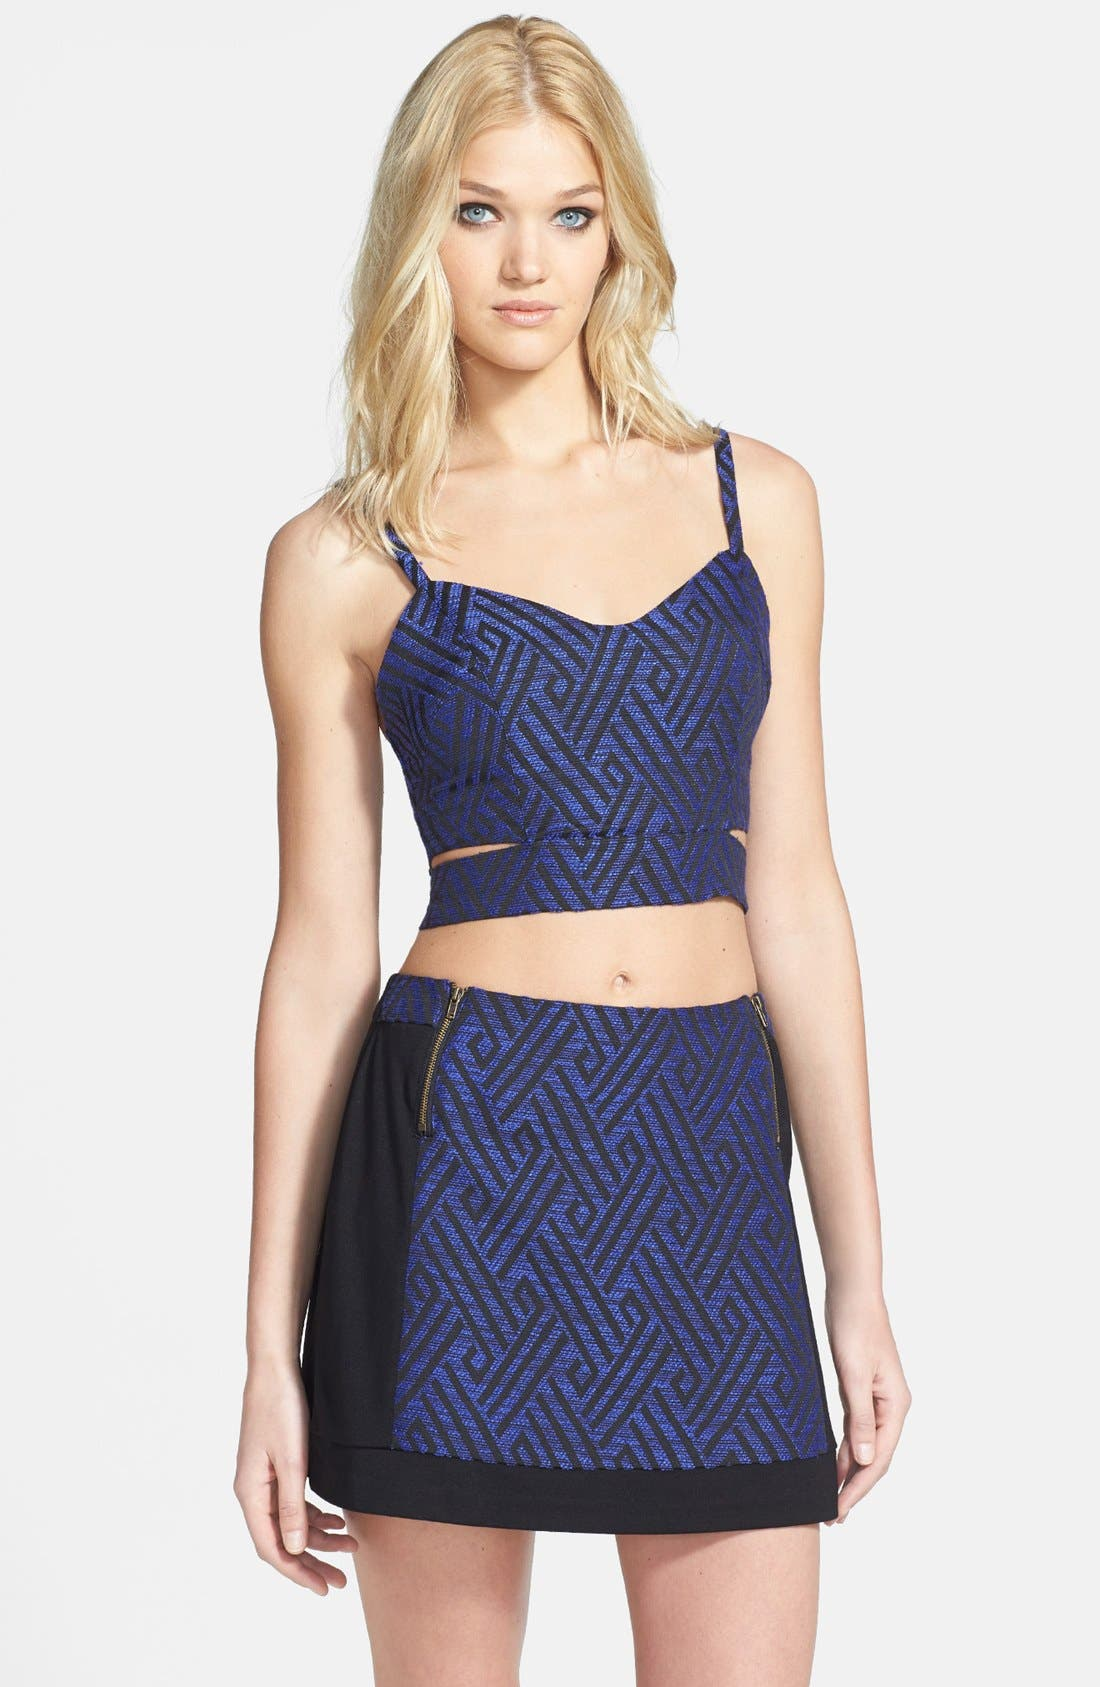 Alternate Image 1 Selected - ASTR Diamond Jacquard Cutout Crop Tank